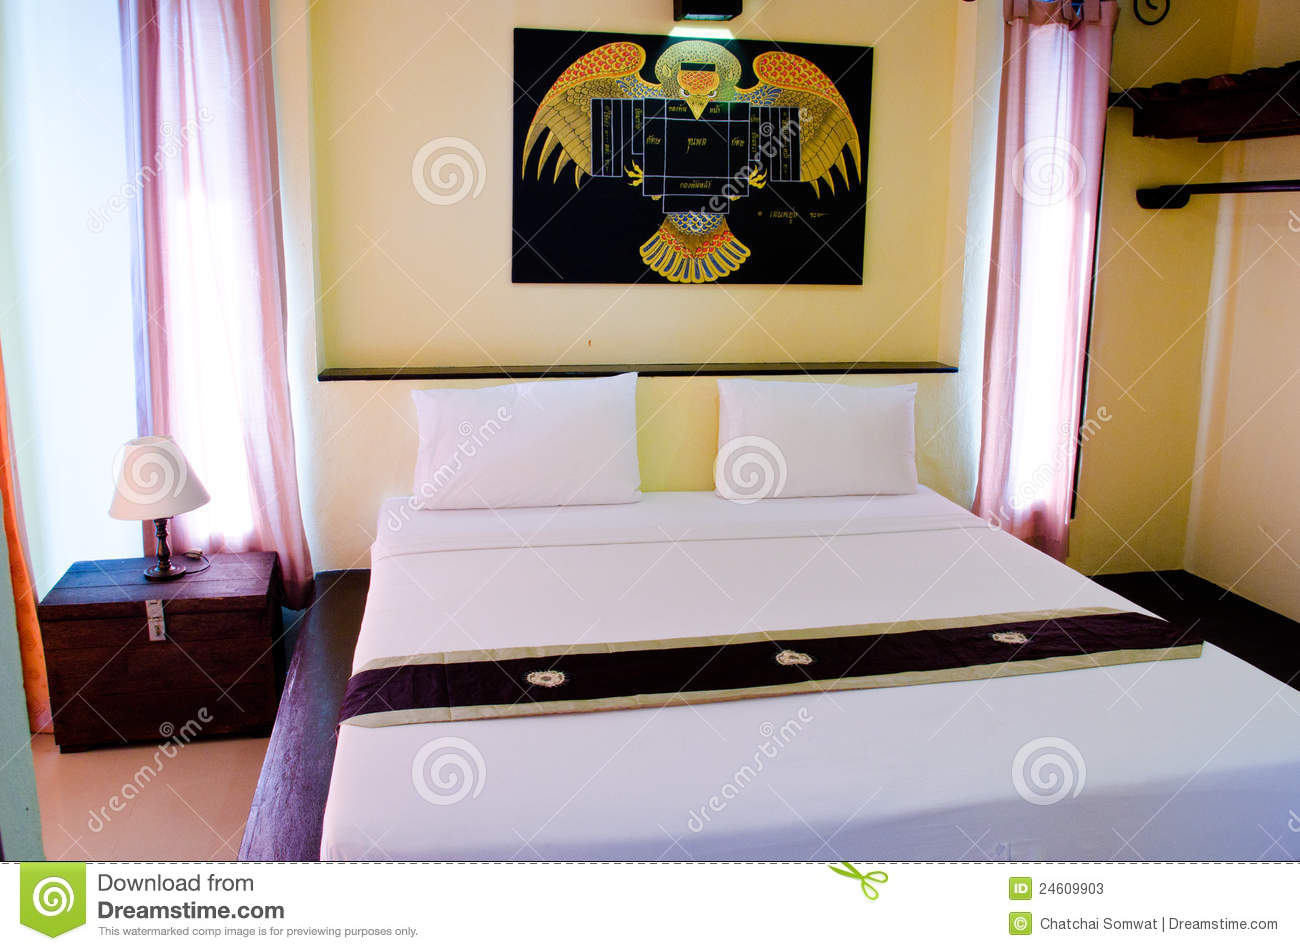 Bedrooms are comfortable stock photos image 24609903 for Well decorated bedroom